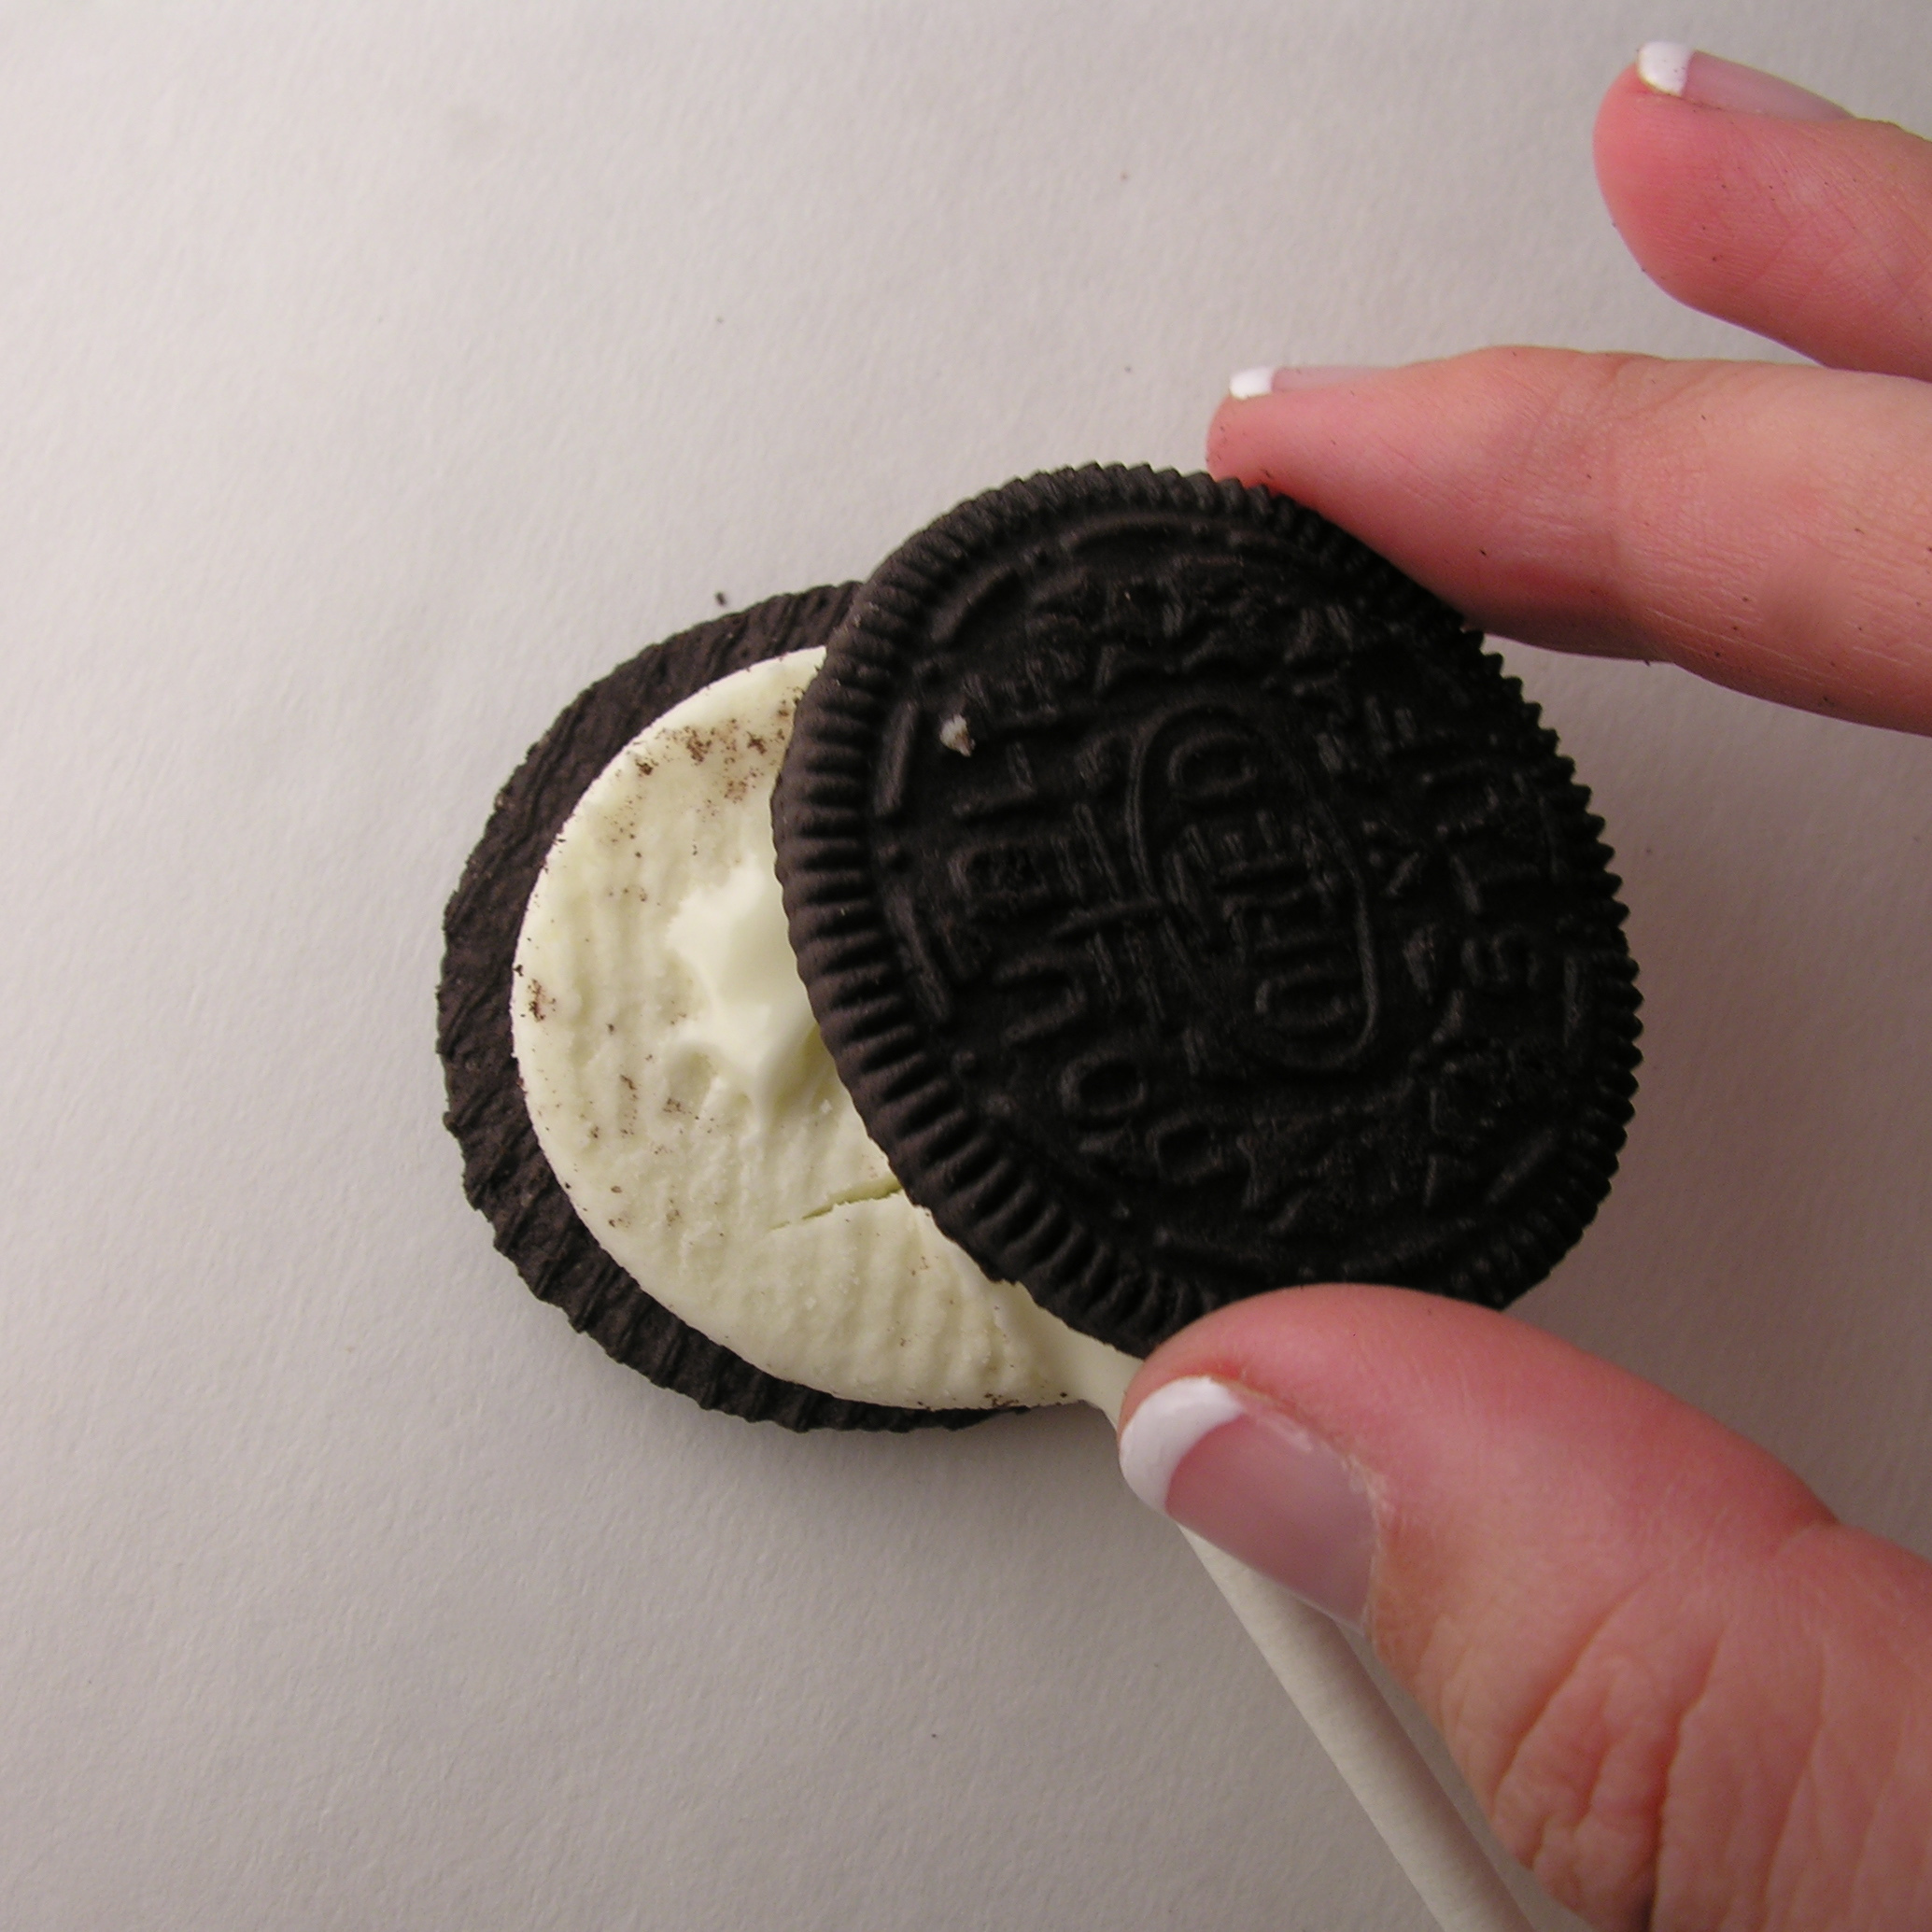 Oreo (/ ˈ ɔːr i oʊ /) is a brand of cookie usually consisting of two chocolate cookies with a sweet crème filling, marketed as